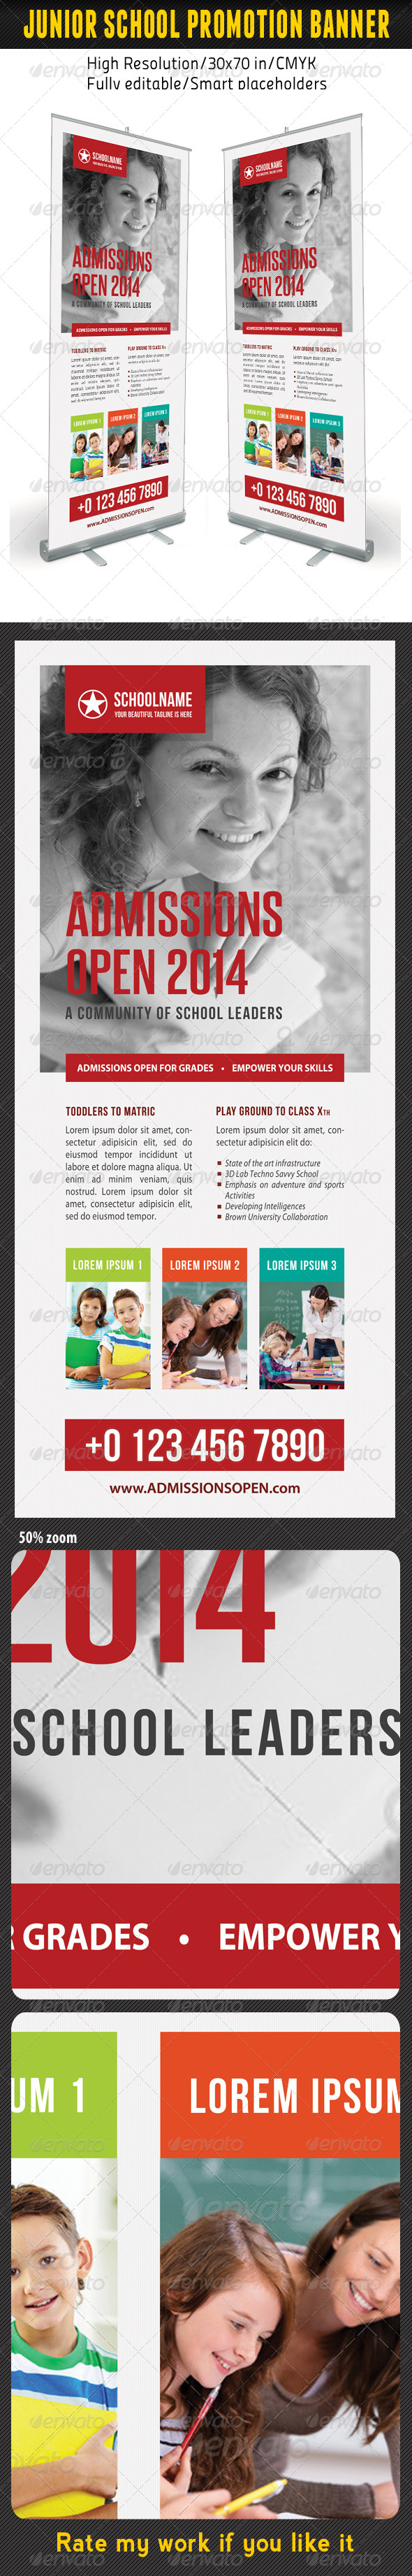 GraphicRiver Junior School Promotion Banner Template 06 7150744